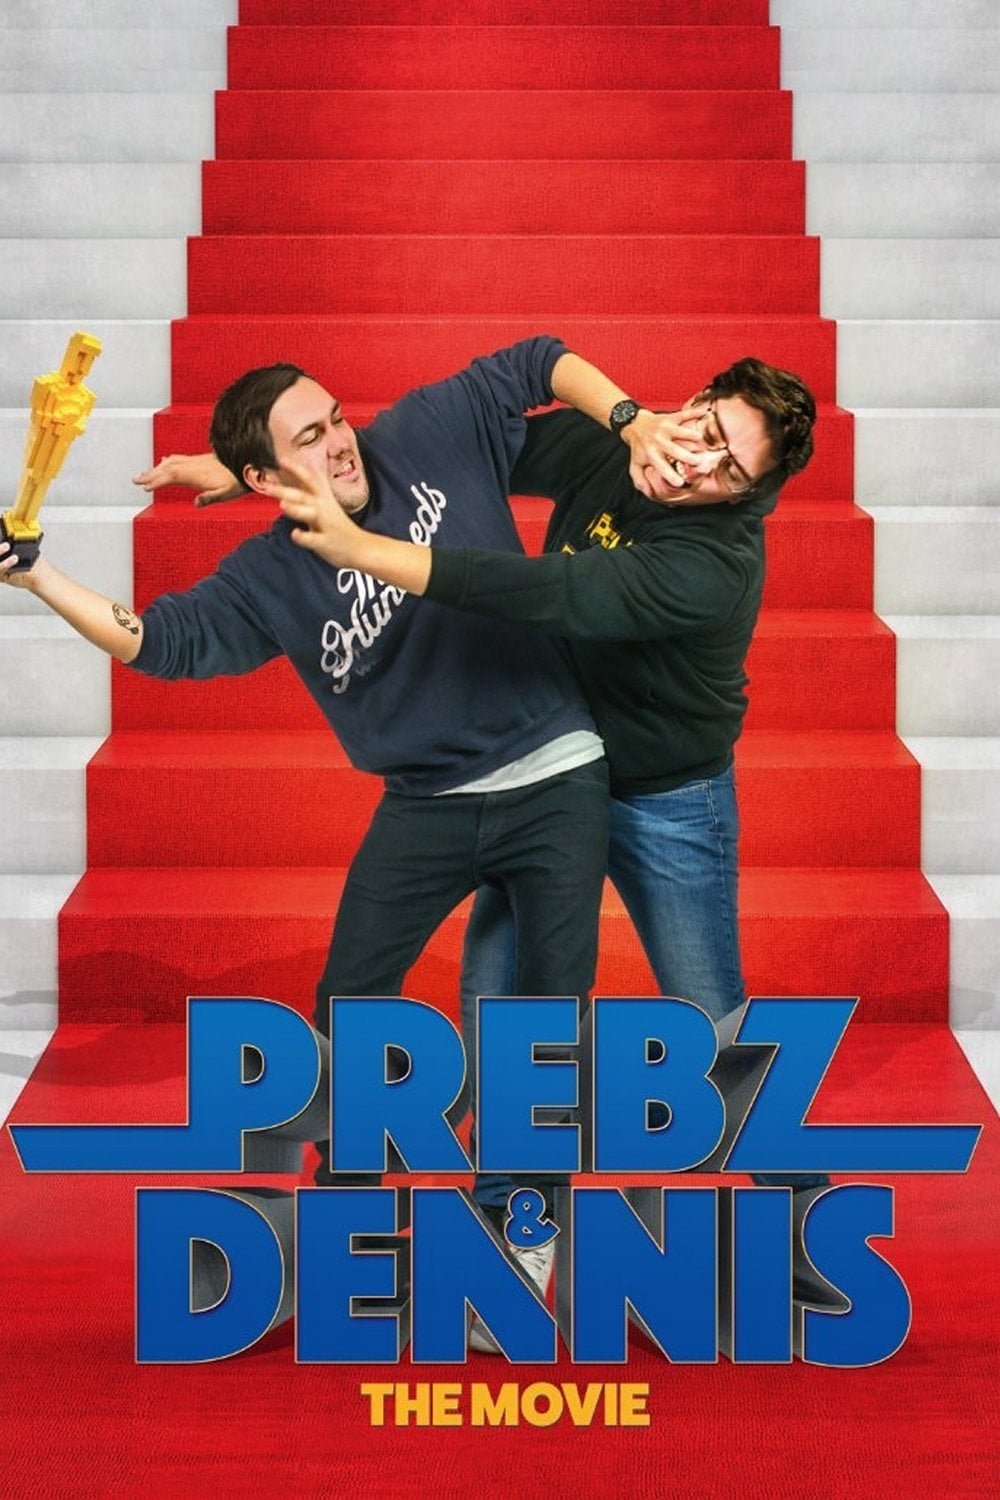 Prebz og Dennis: The Movie (2017)